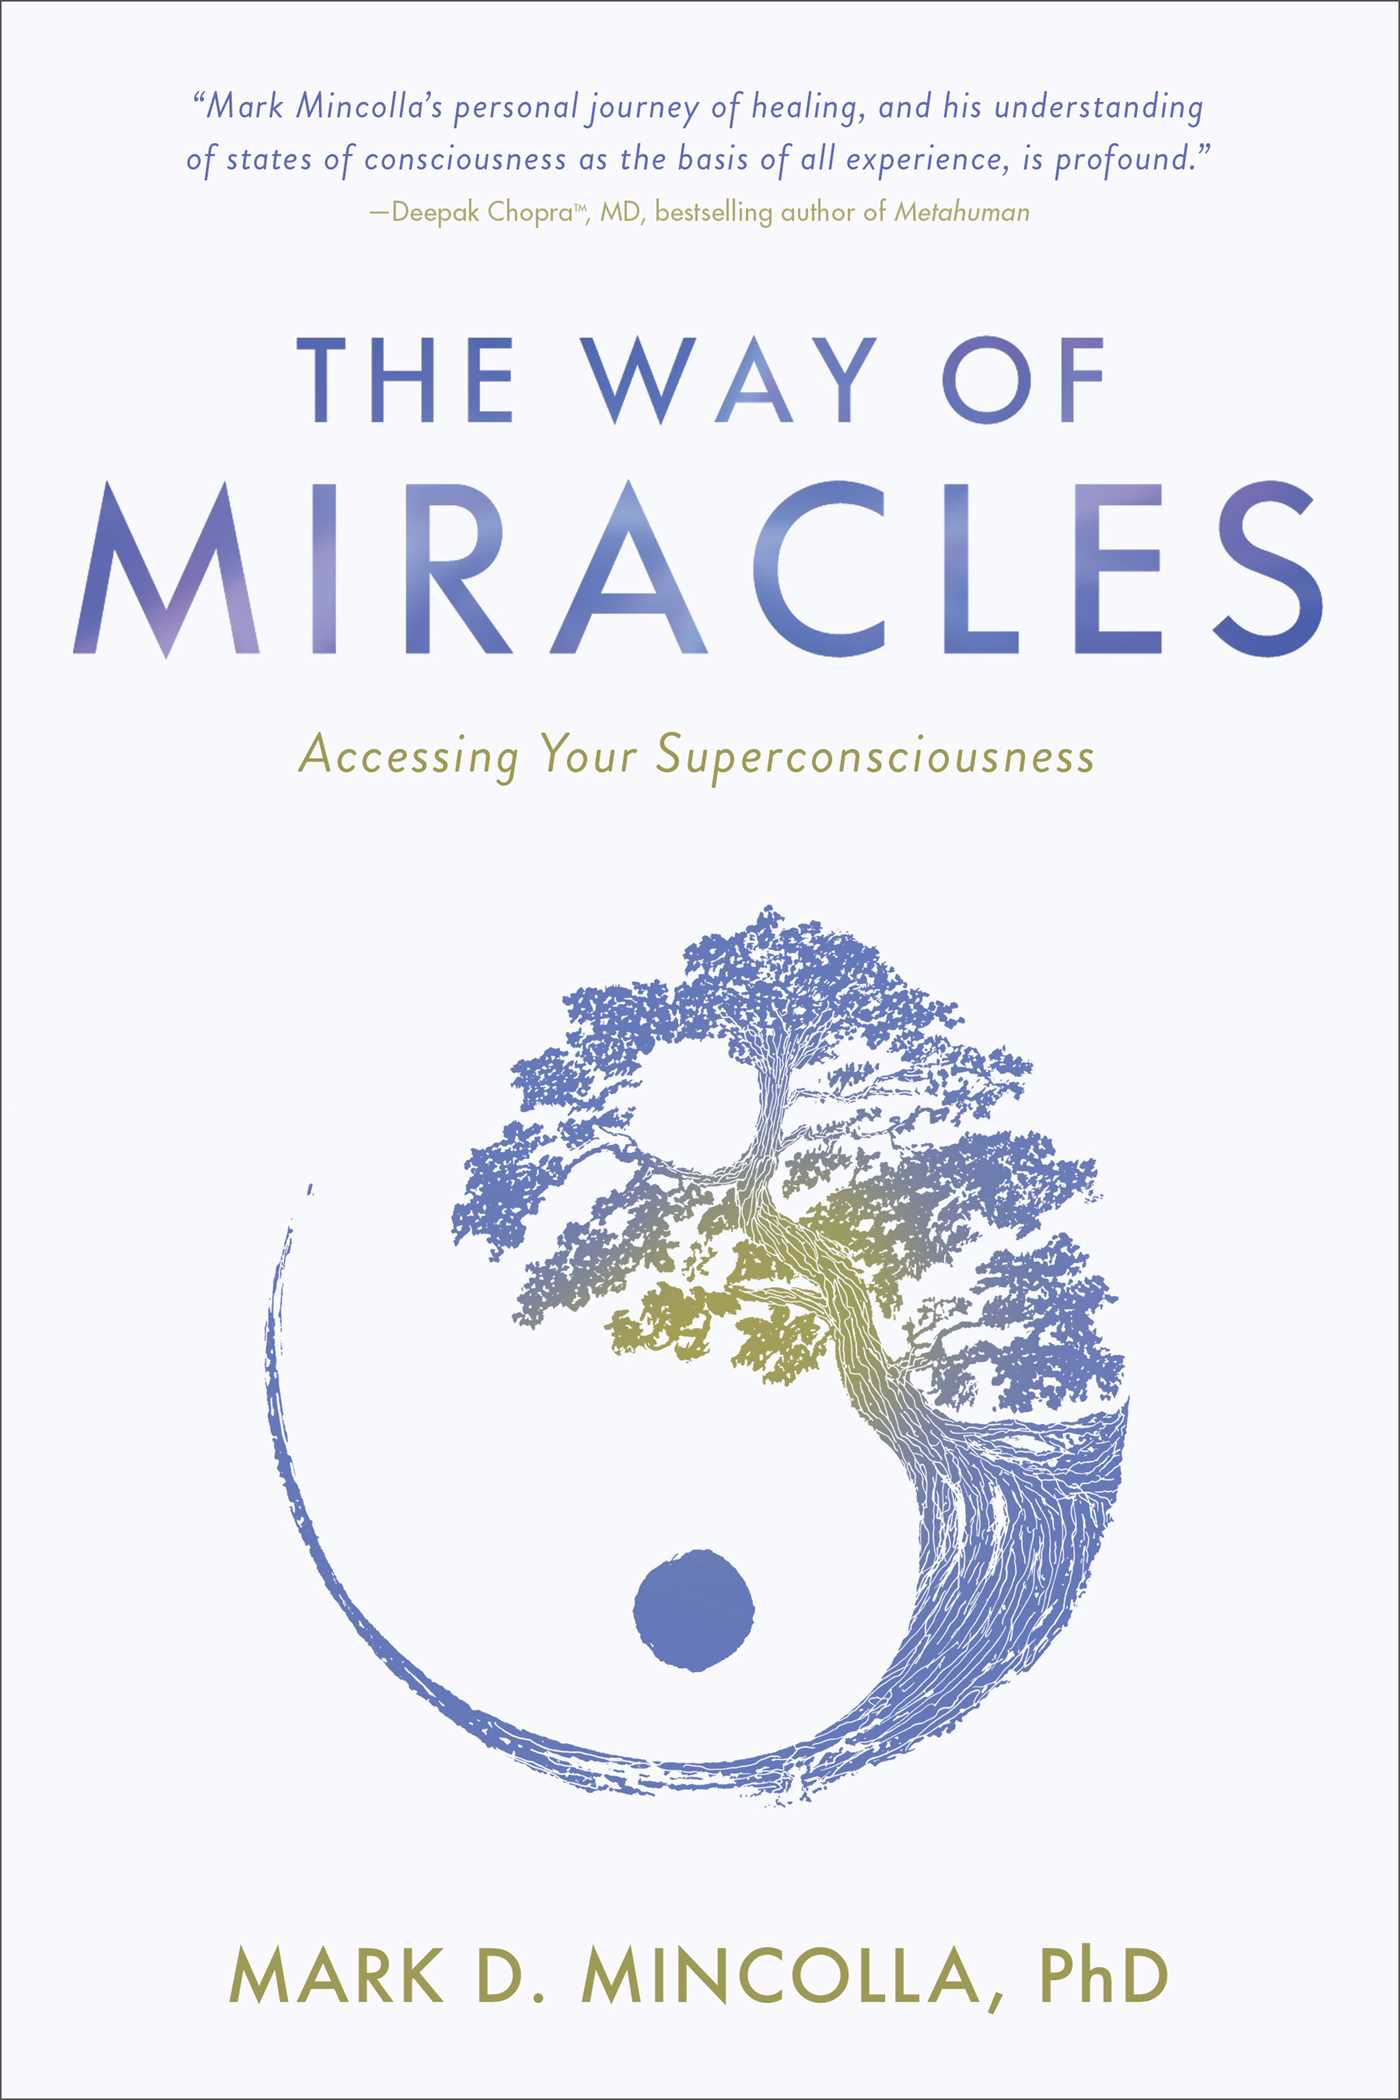 The Way of Miracles: Accessing Your Superconsciousness